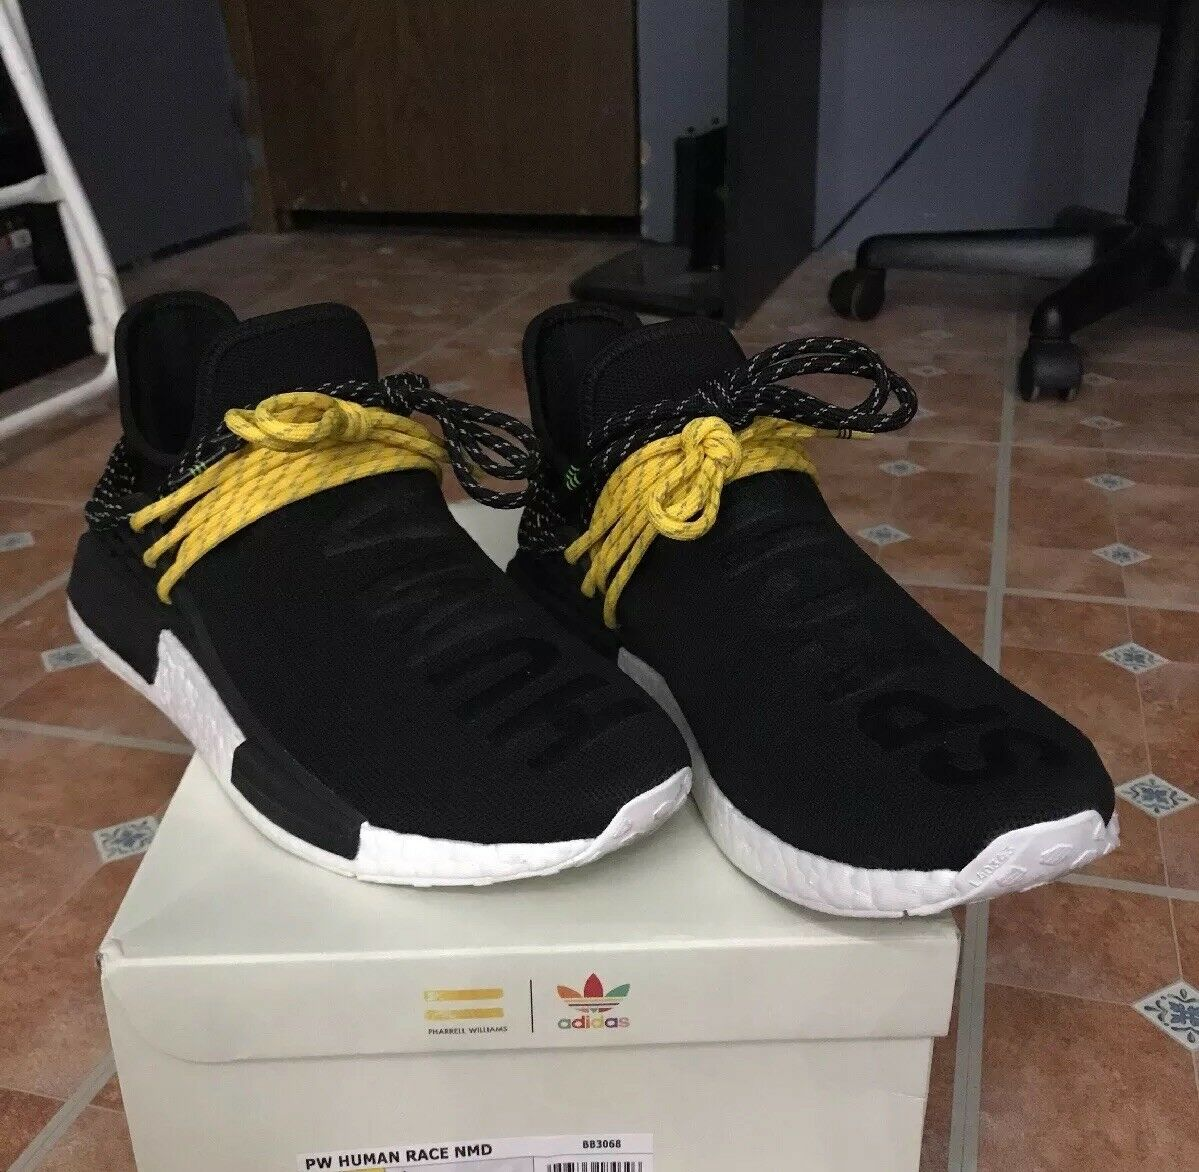 Human Race Nmd Black (Human Species)